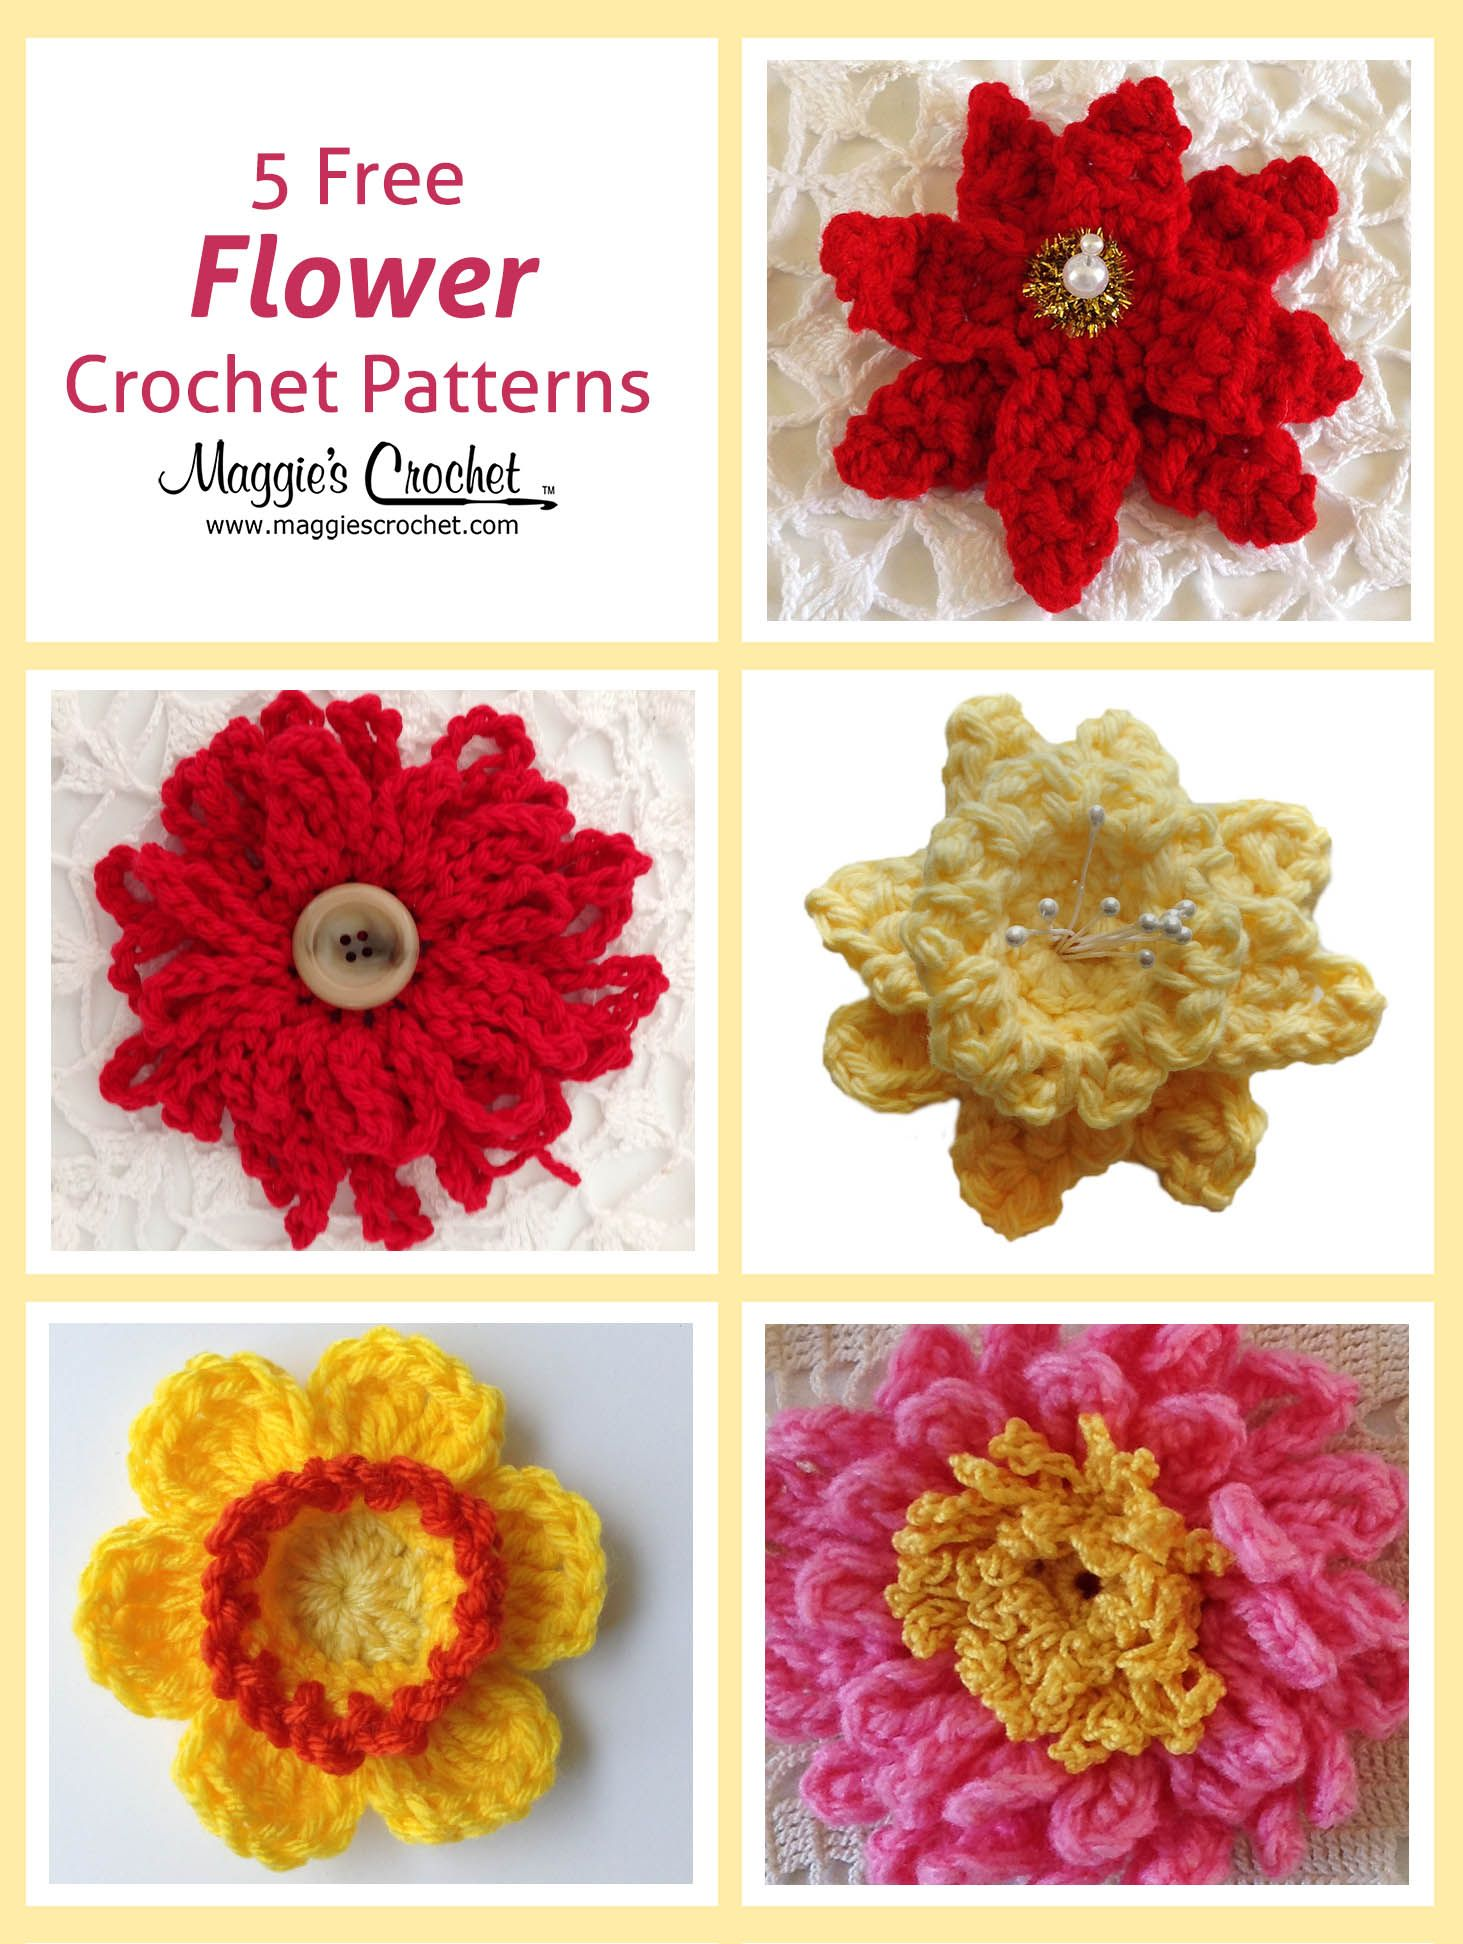 This Week We Are Pleased To Offer Five Free Flower Patterns Follow